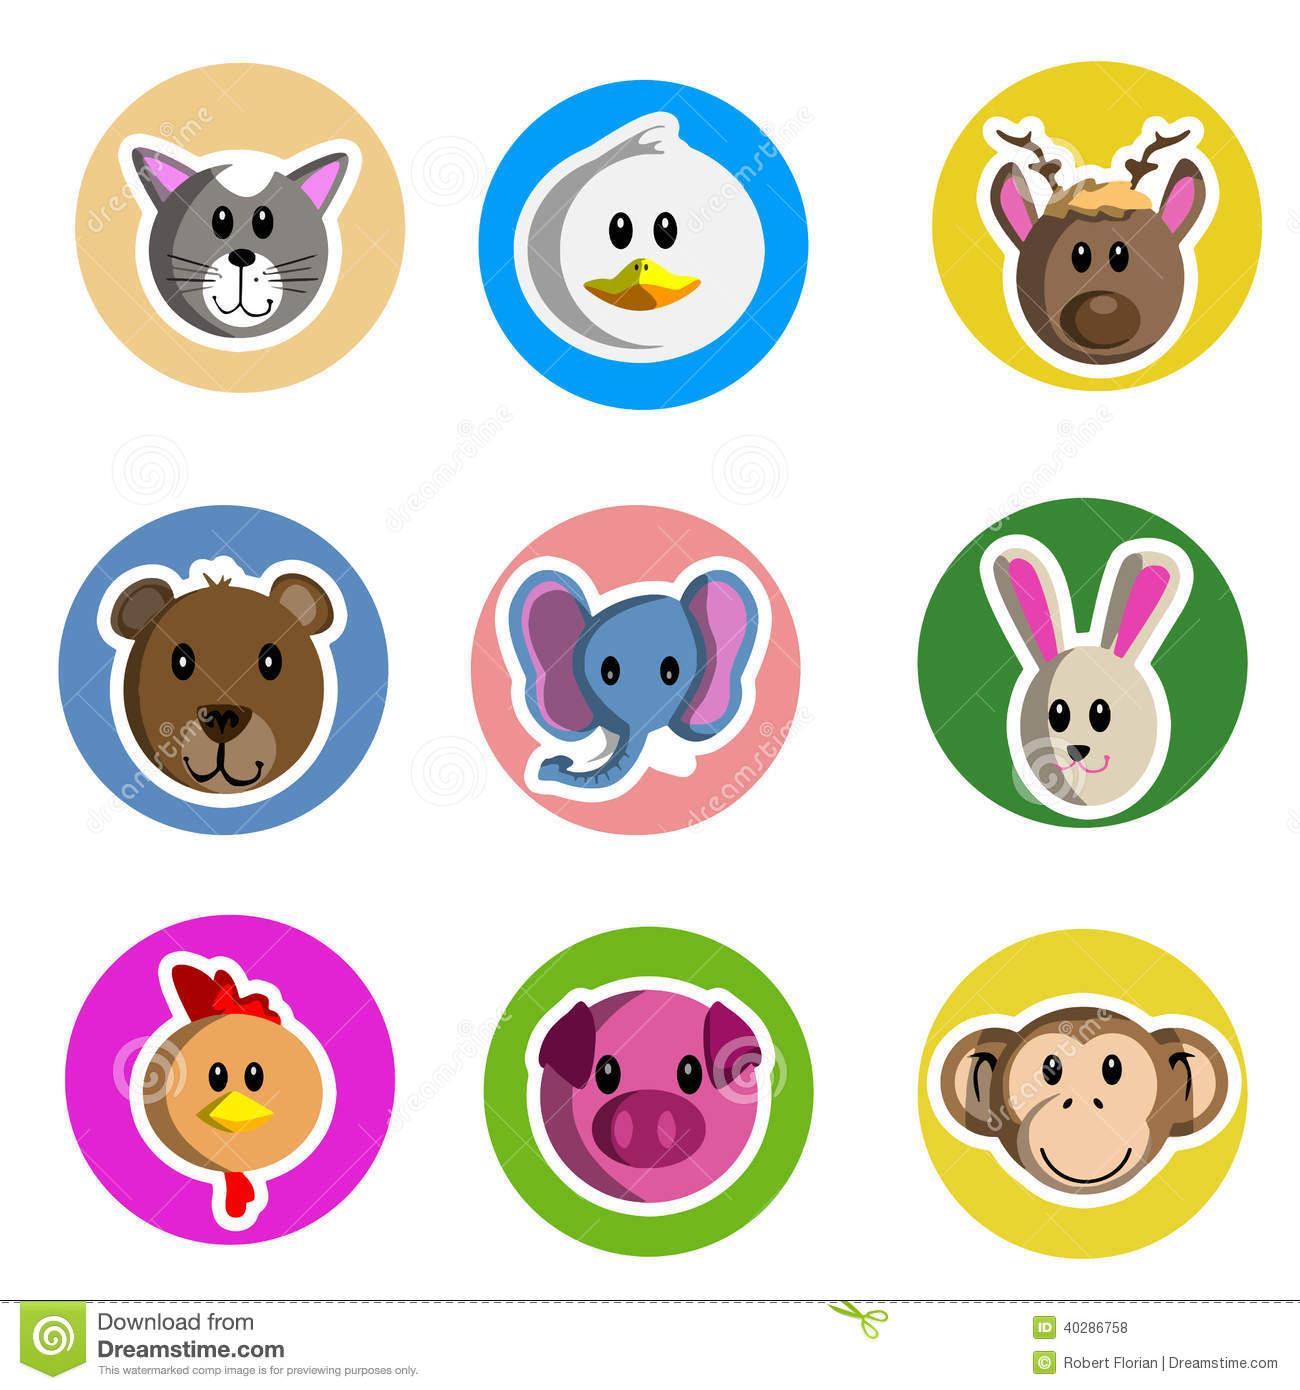 cartoon animal stickers in - photo #35